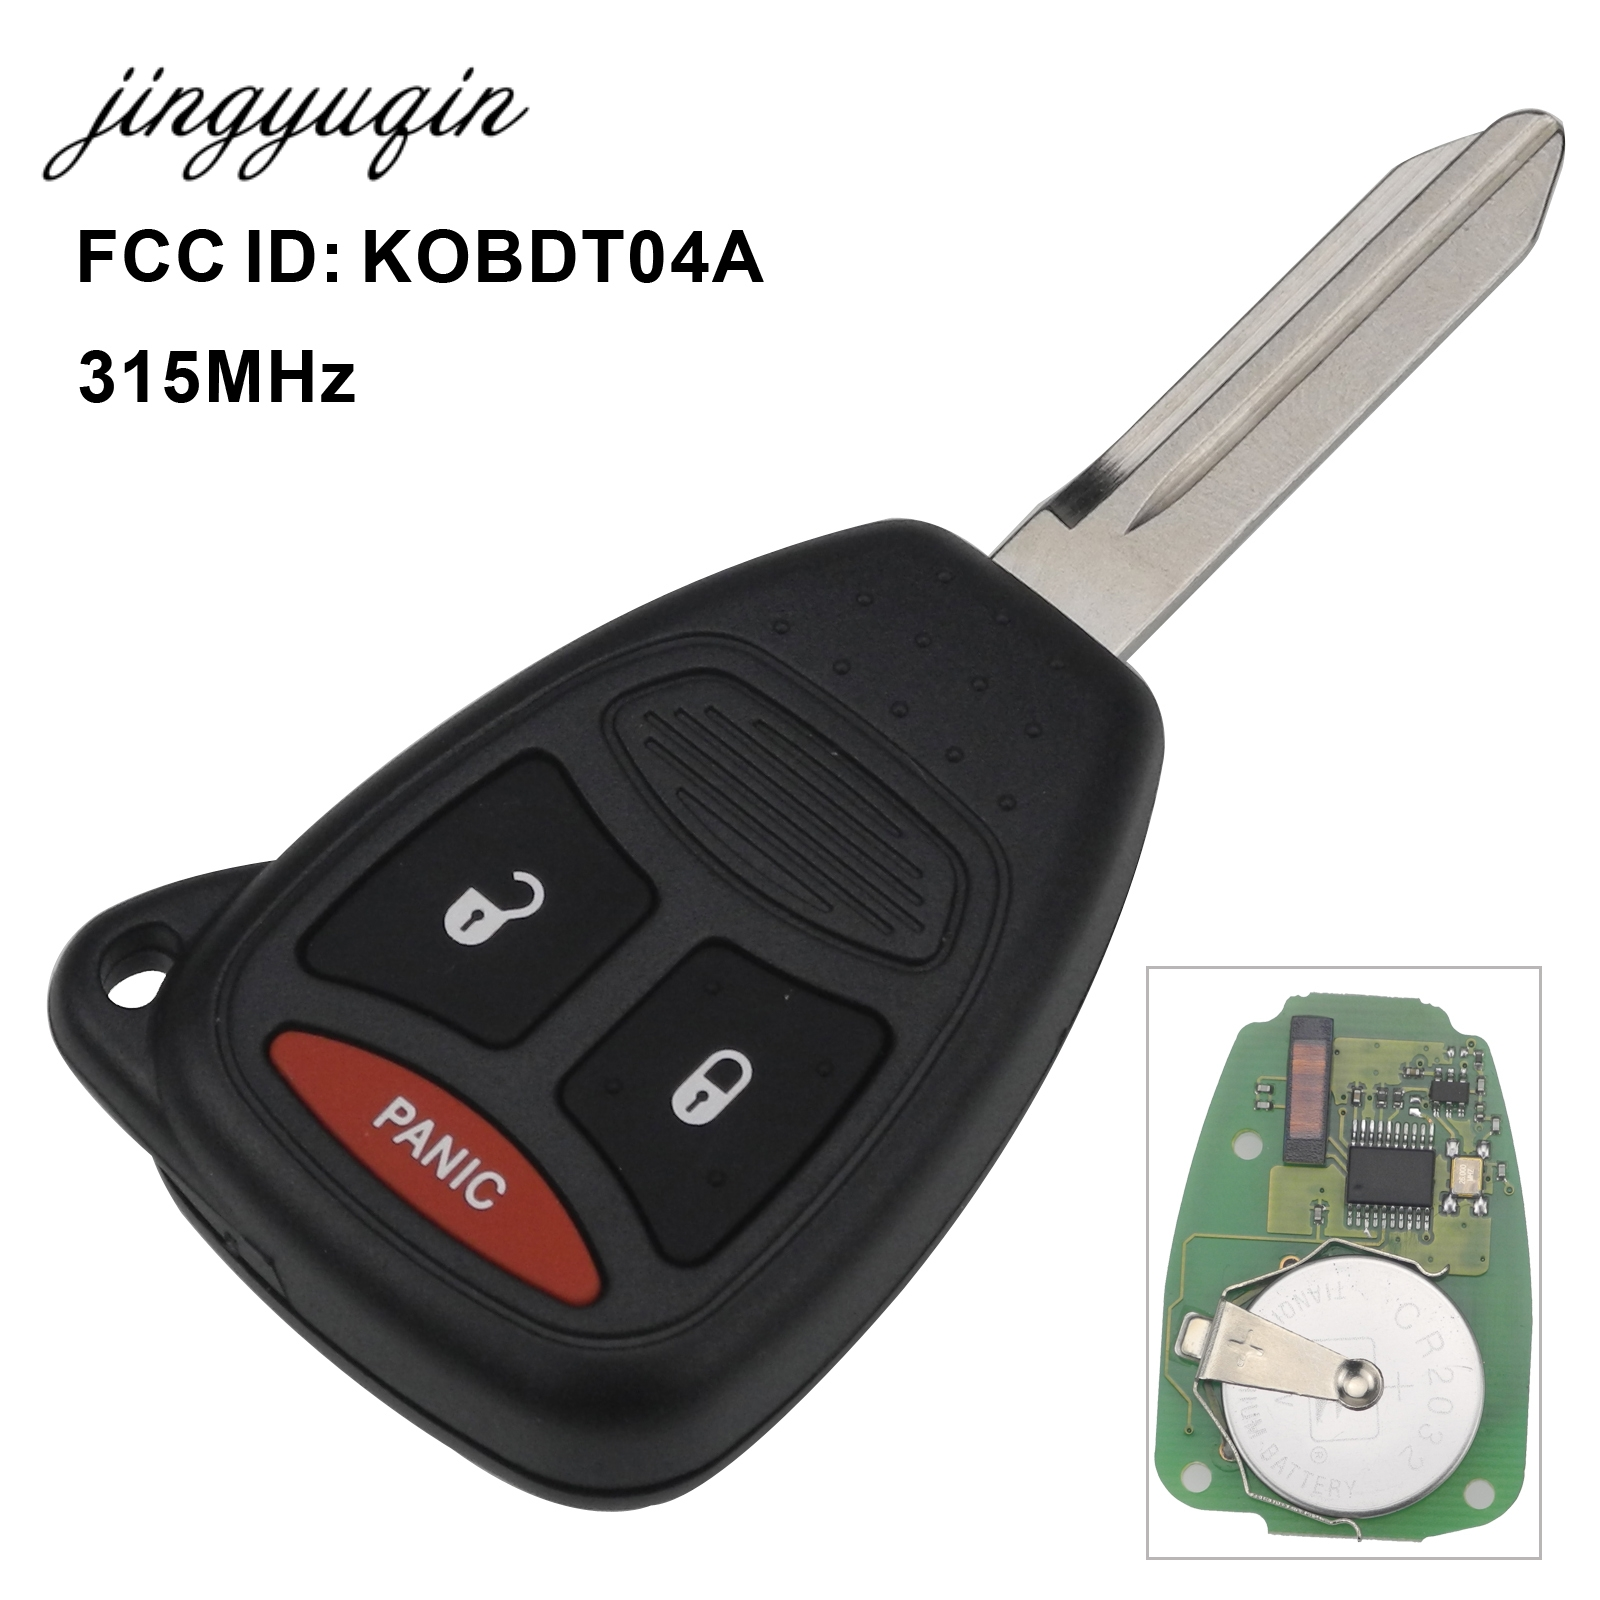 jingyuqin 3 Button Remote key Fob Control KOBDT04A 315MHz for Dodge Dakota Durango Charger for Jeep Grand Cherokee Chrysler 300 кольца sjw rw051